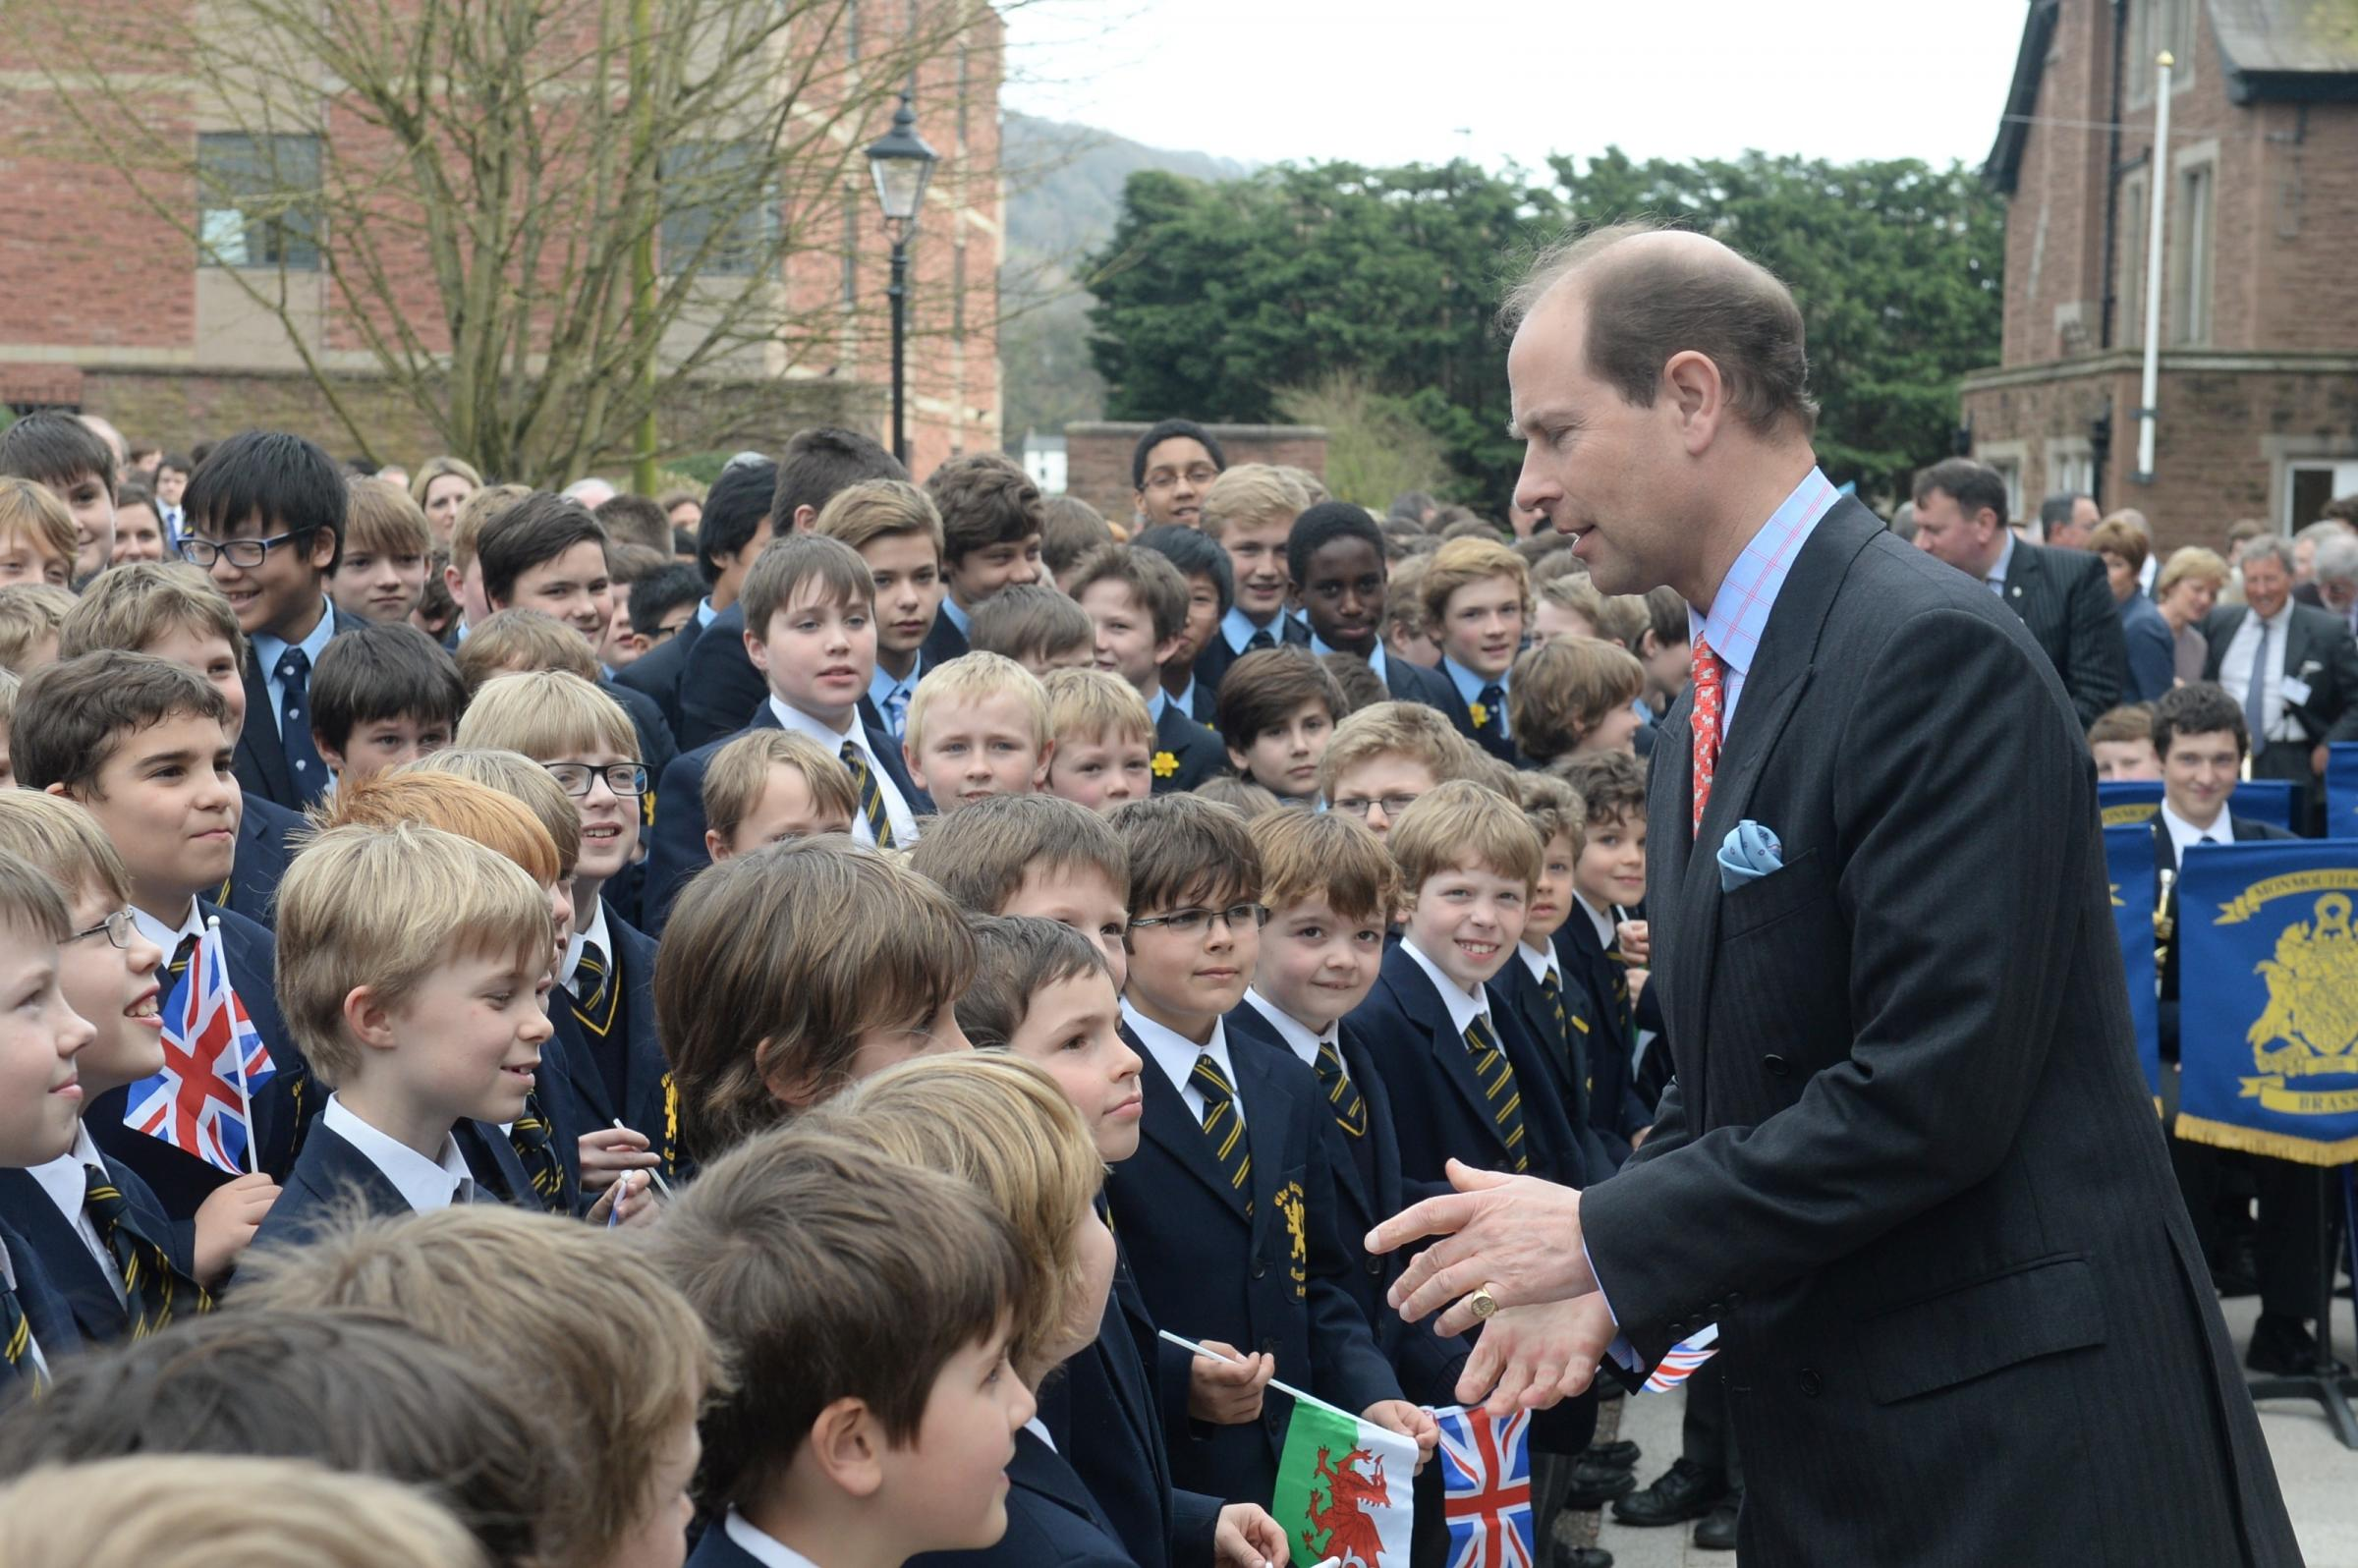 Prince Edward gets royal welcome in Gwent